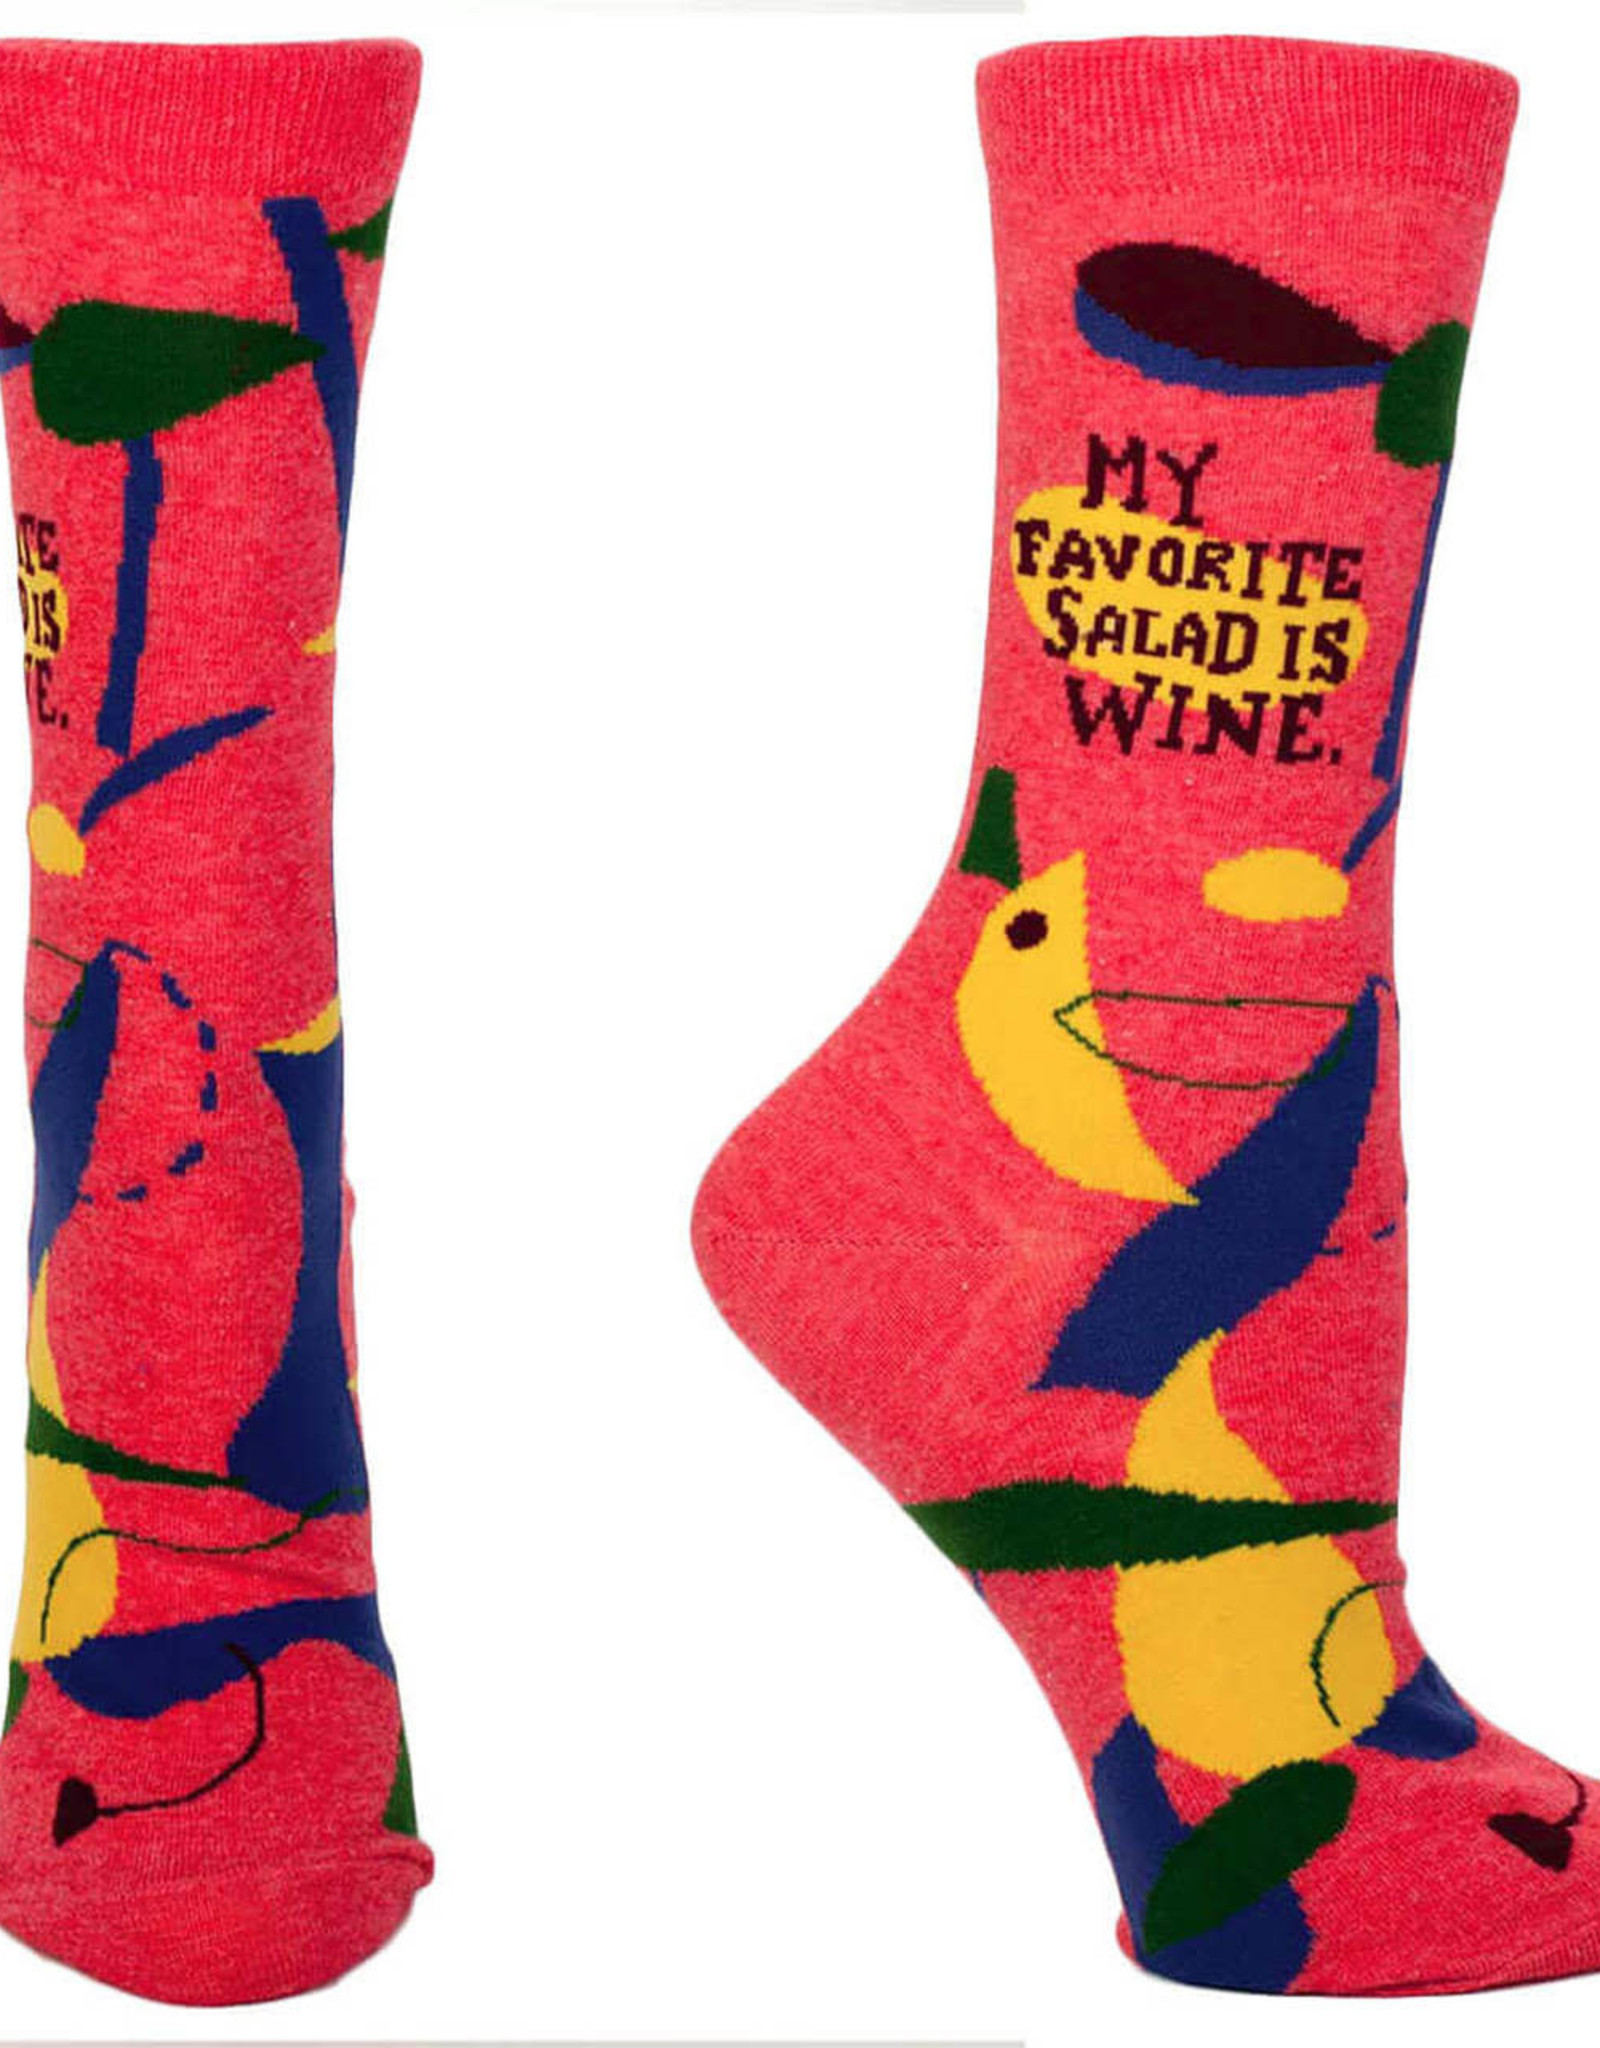 Favorite Salad is Wine Socks